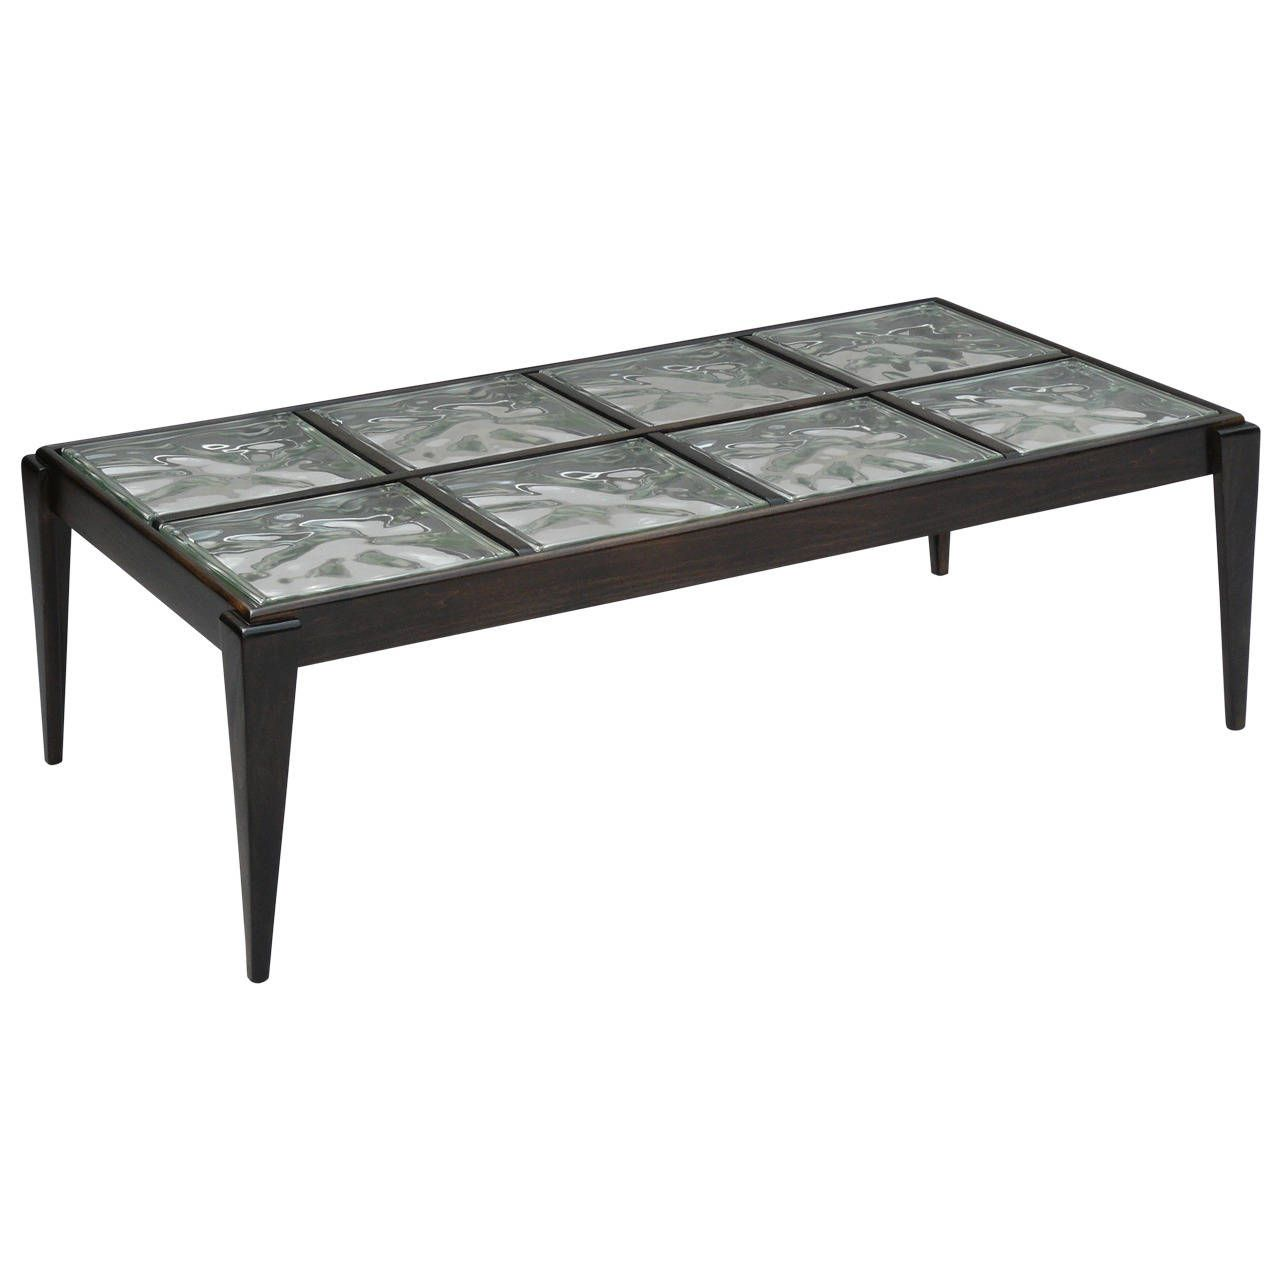 Attirant 40s Glass Block Coffee Table 1